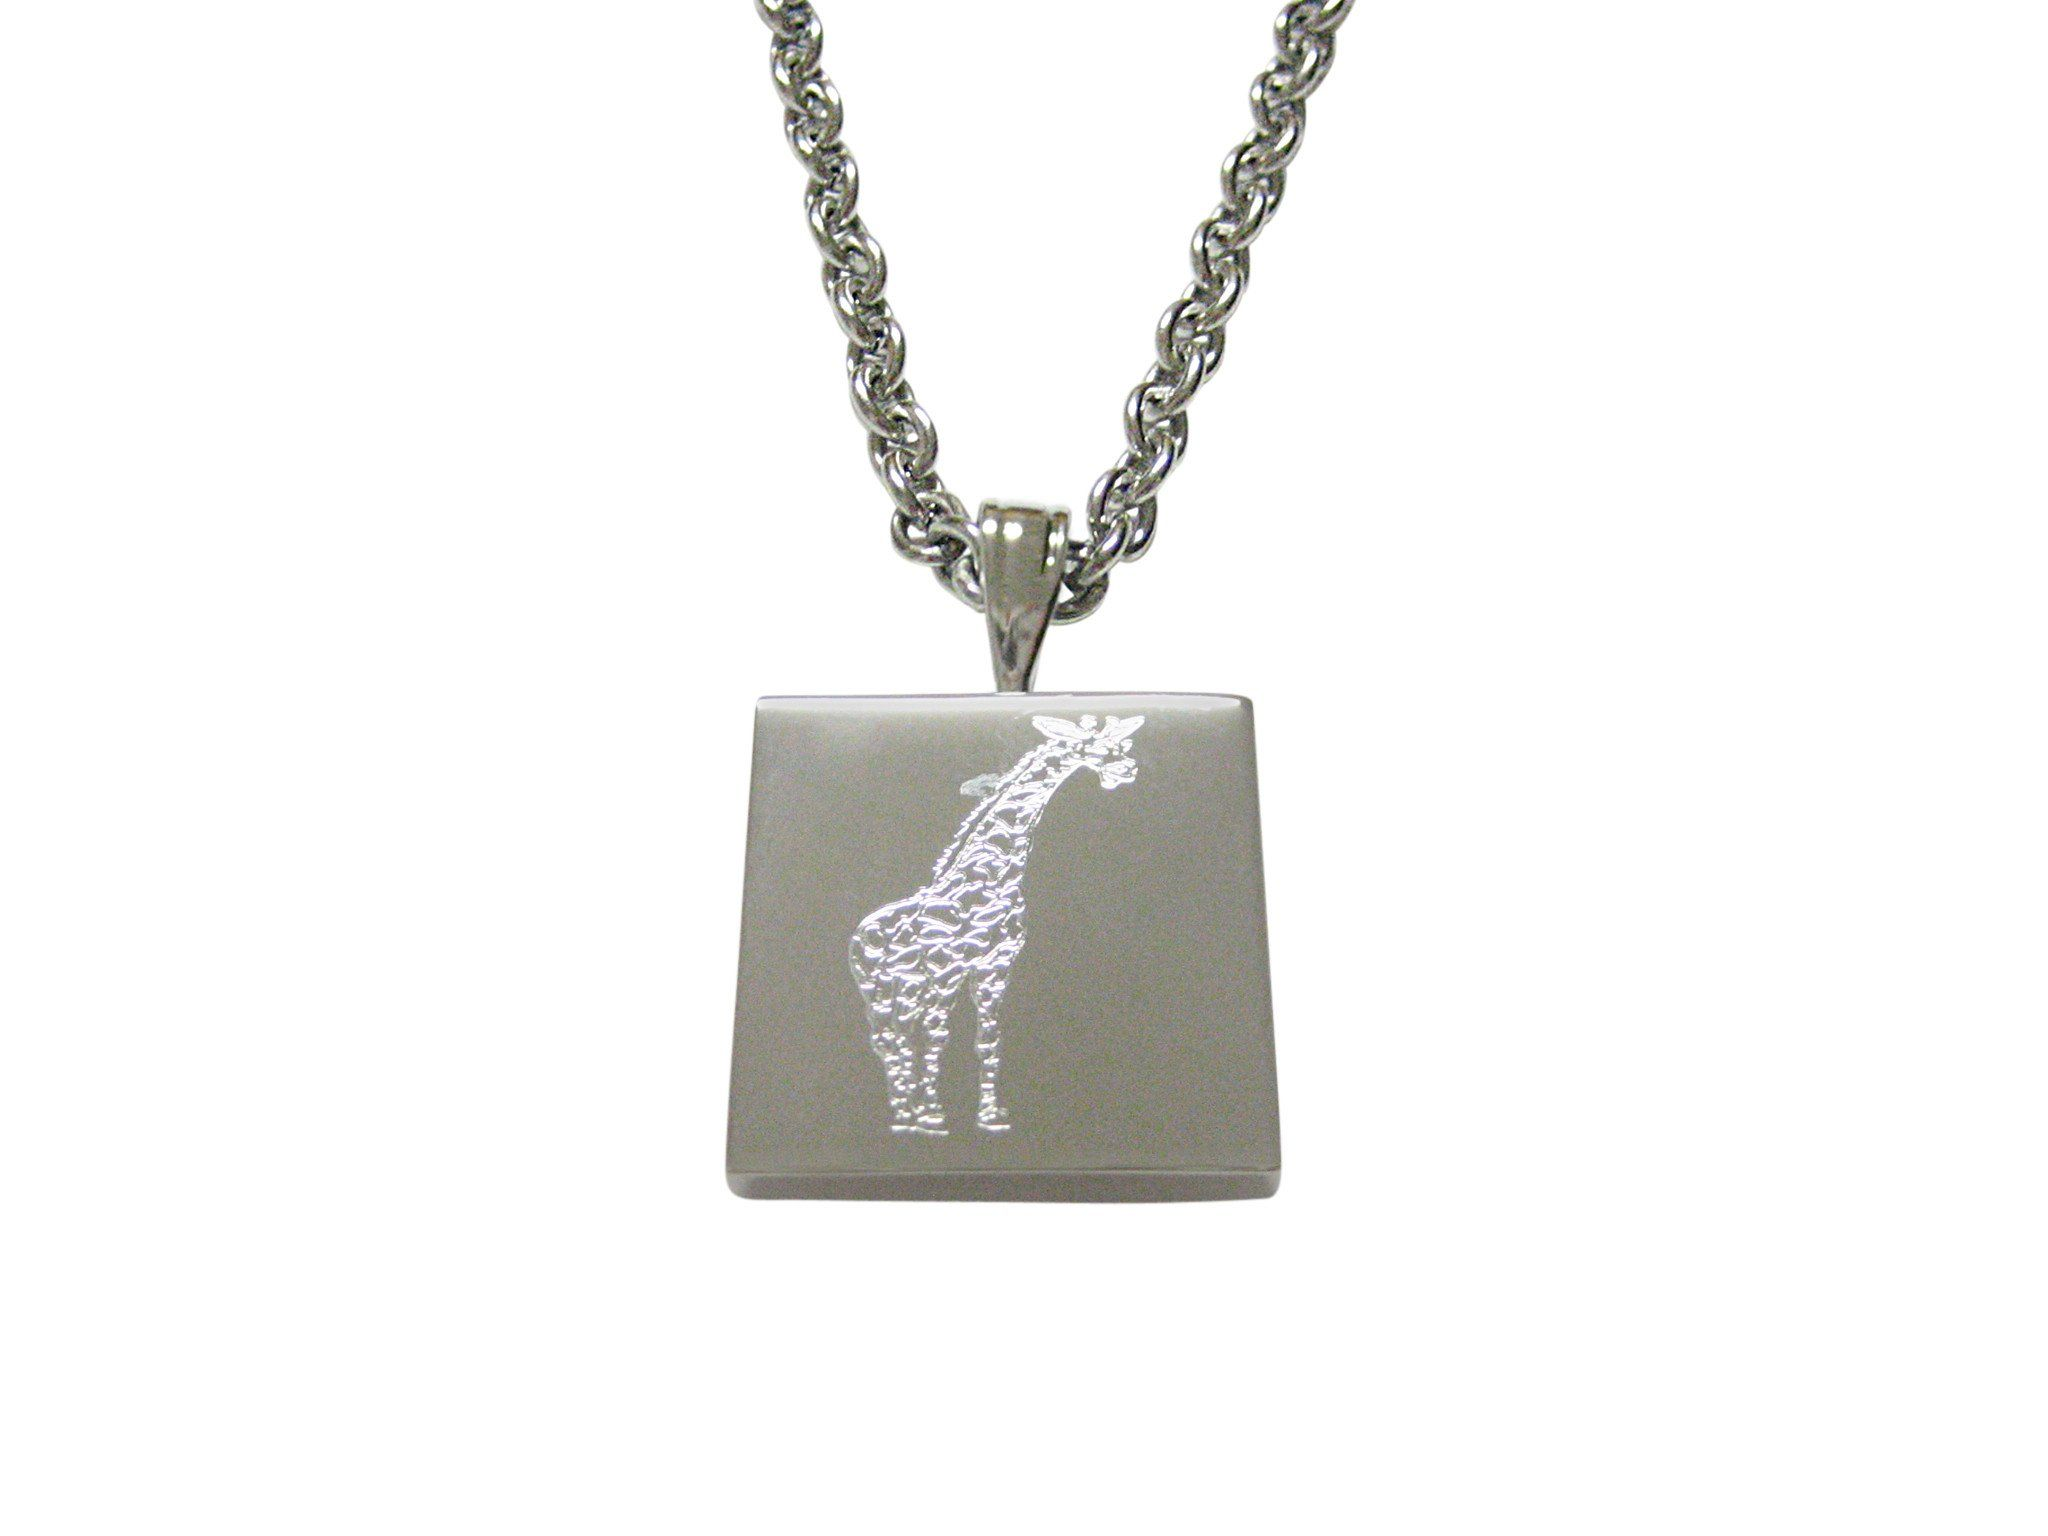 Toned etched giraffe pendant necklace silver toned etched giraffe pendant necklace aloadofball Choice Image